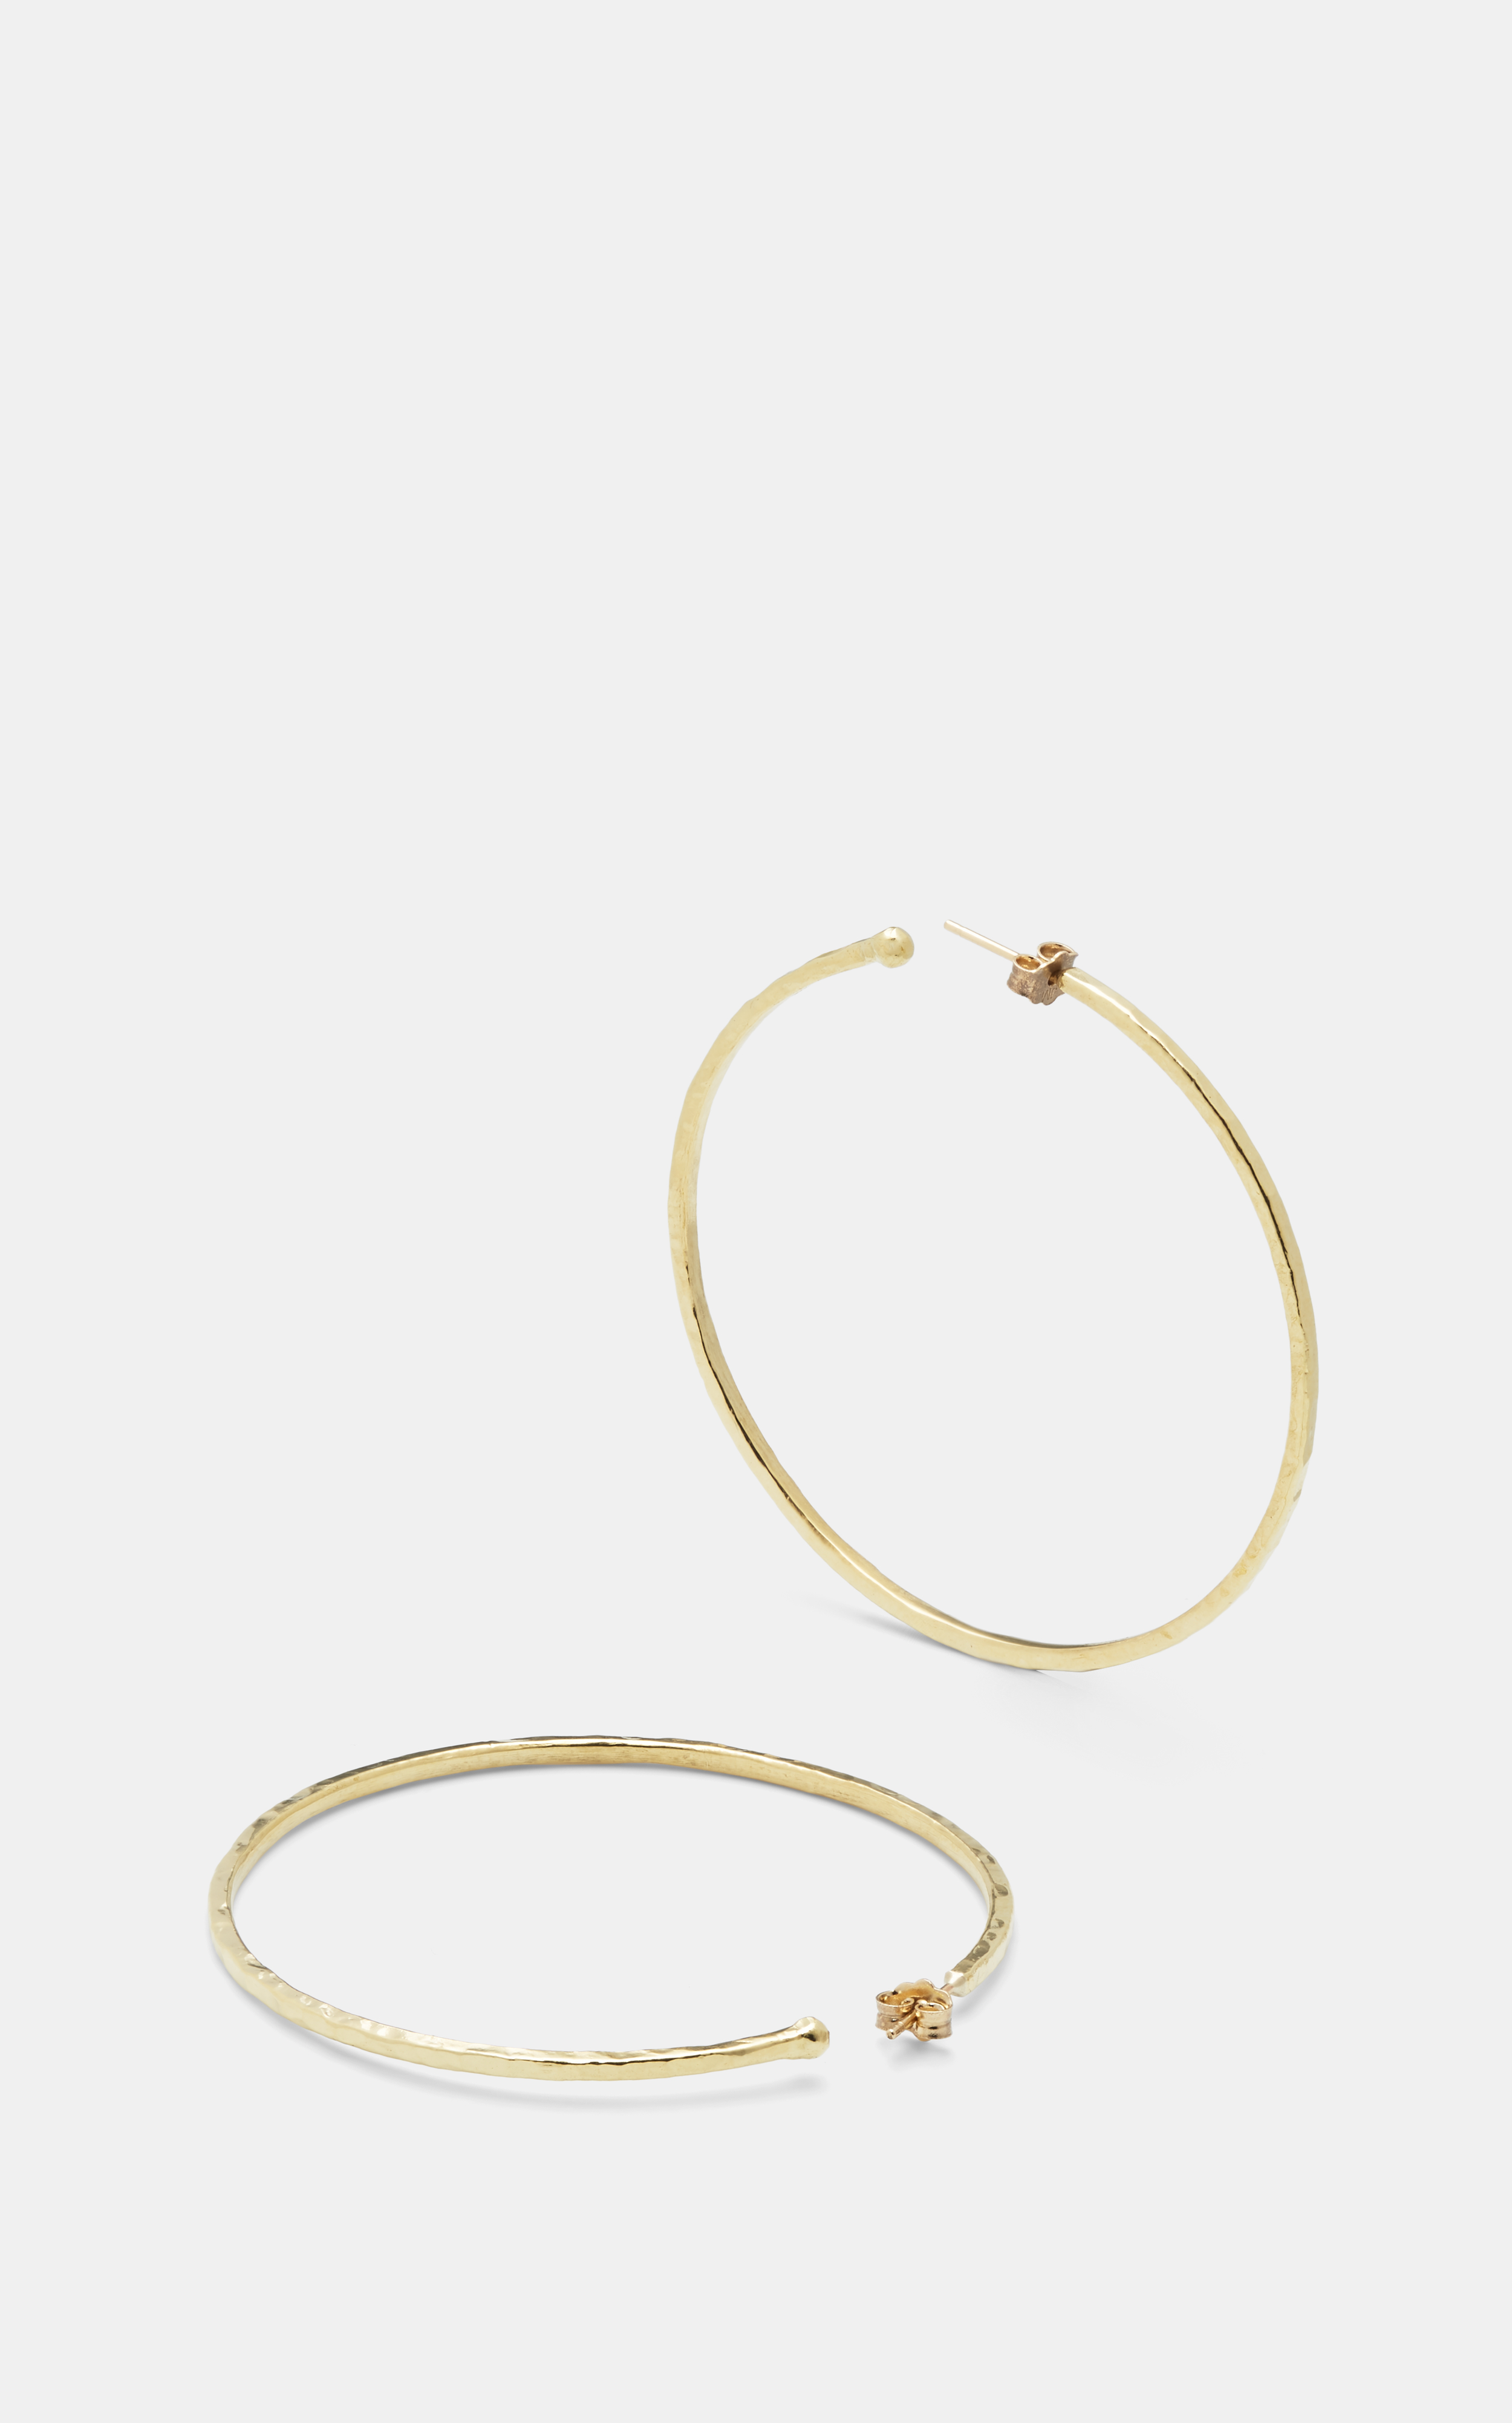 506143380_1_EarringsMain_Test_AFTER.png